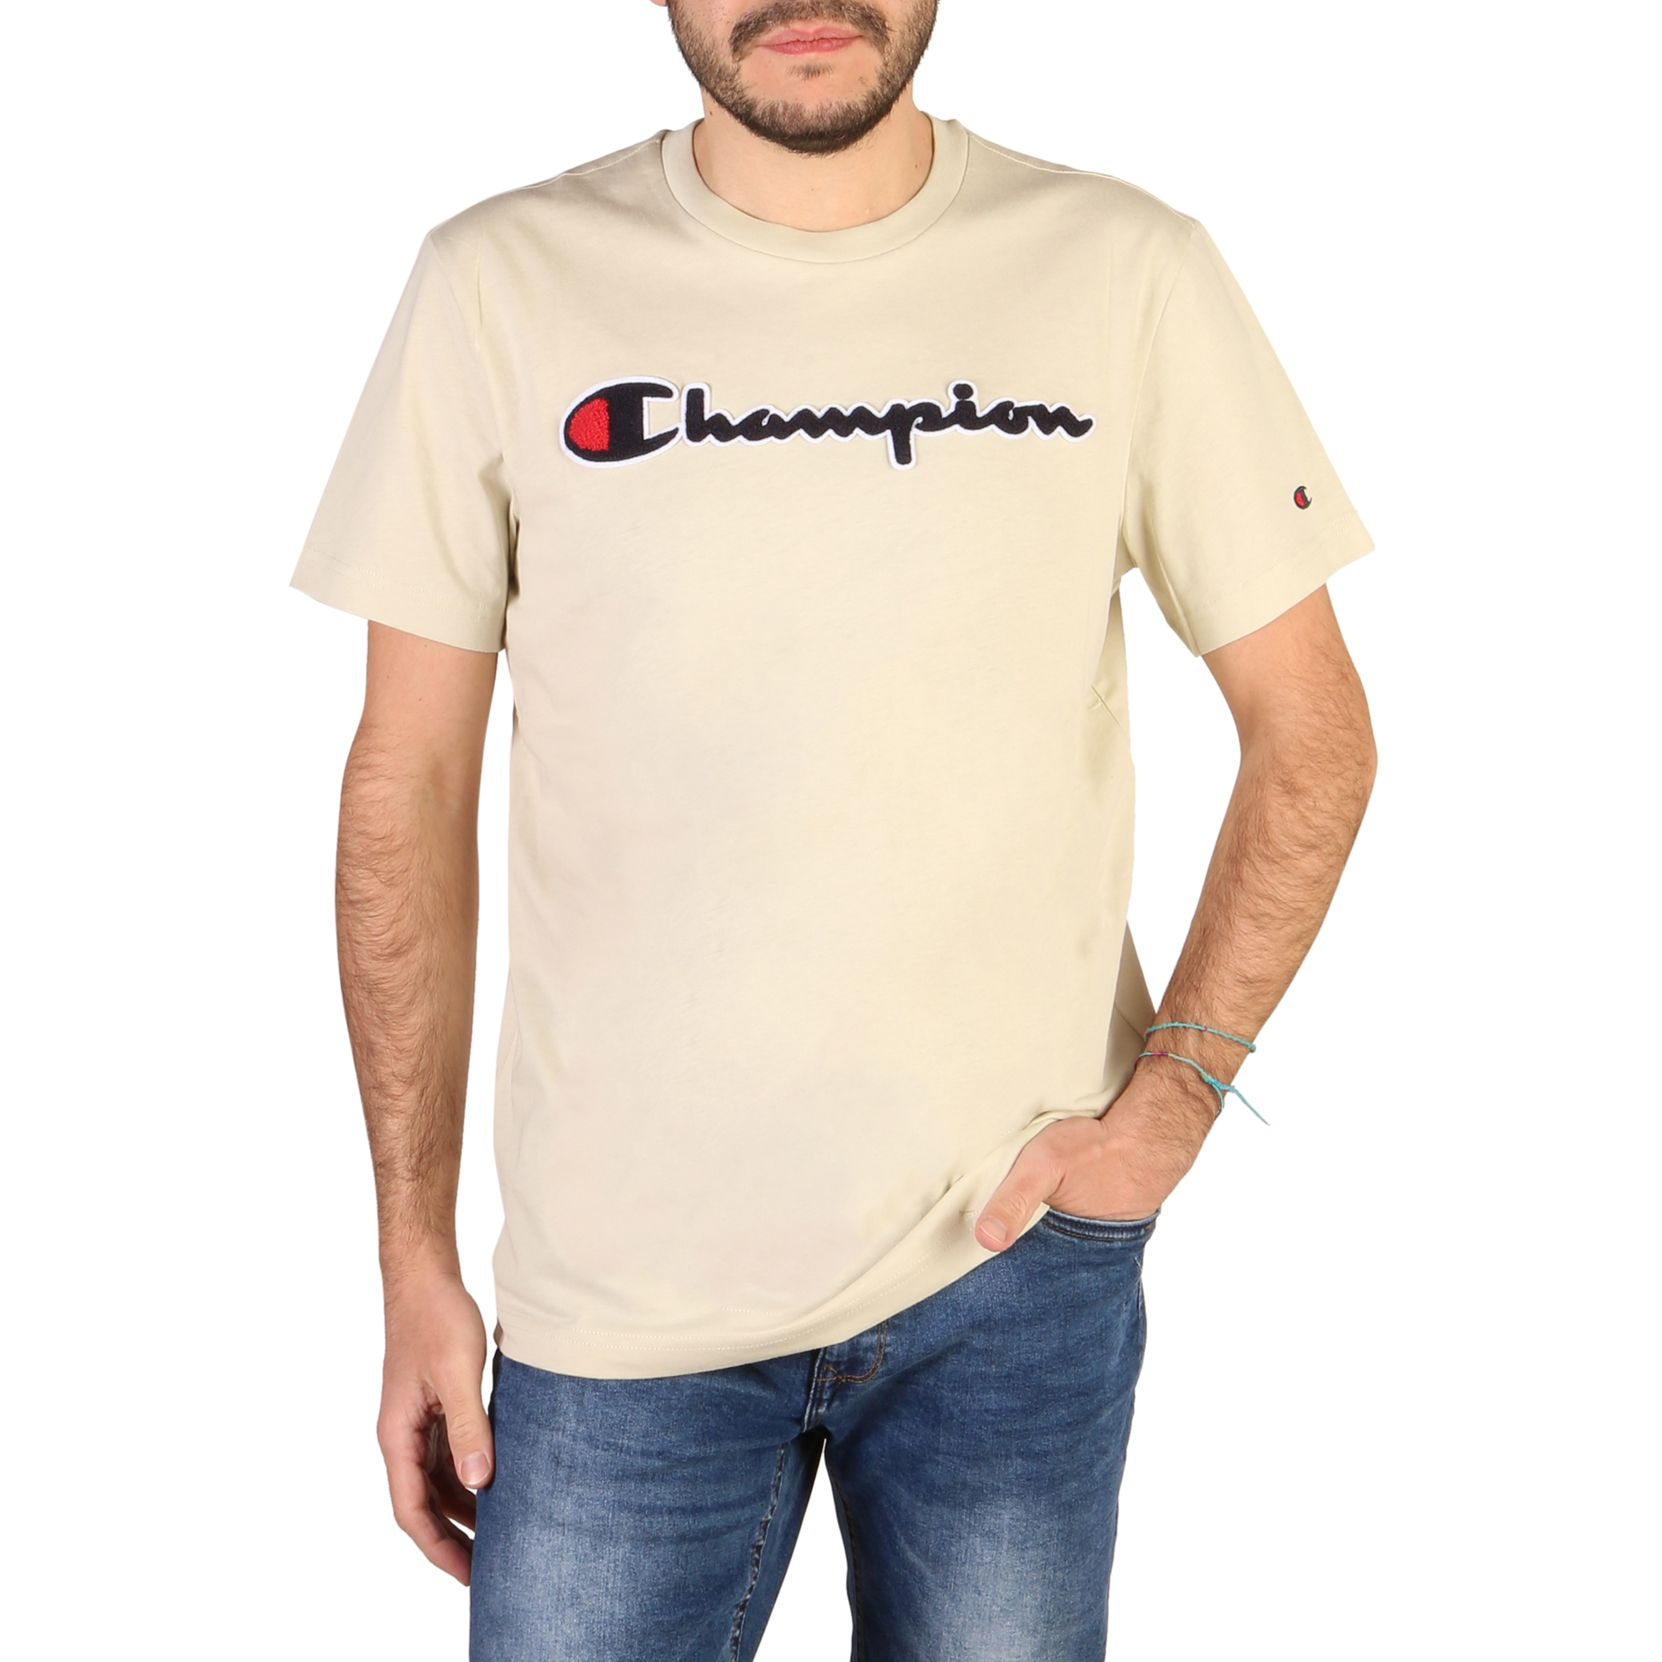 T-shirt męski CHAMPION 213521